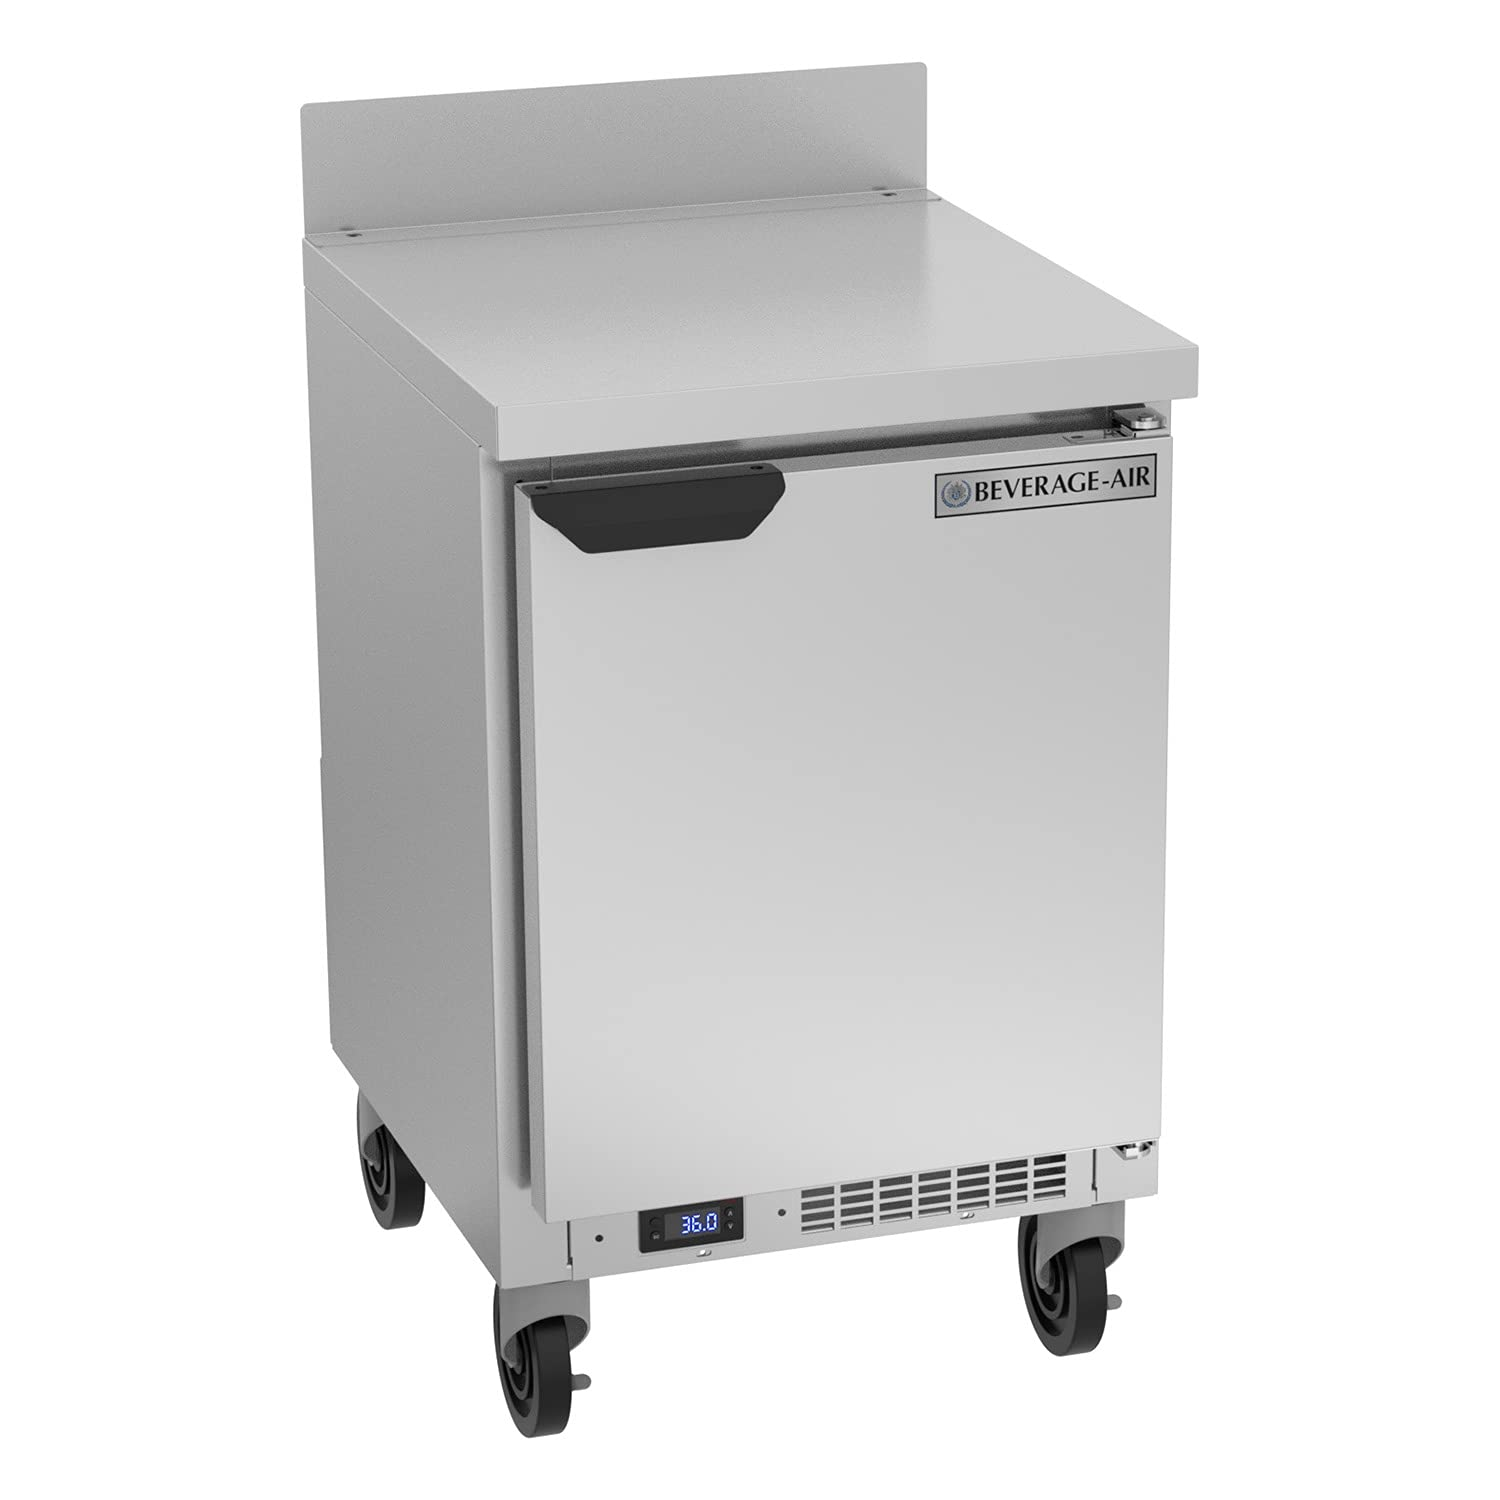 Beverage Super-cheap In stock Air WTR20HC Worktop Refrigerator One-Section